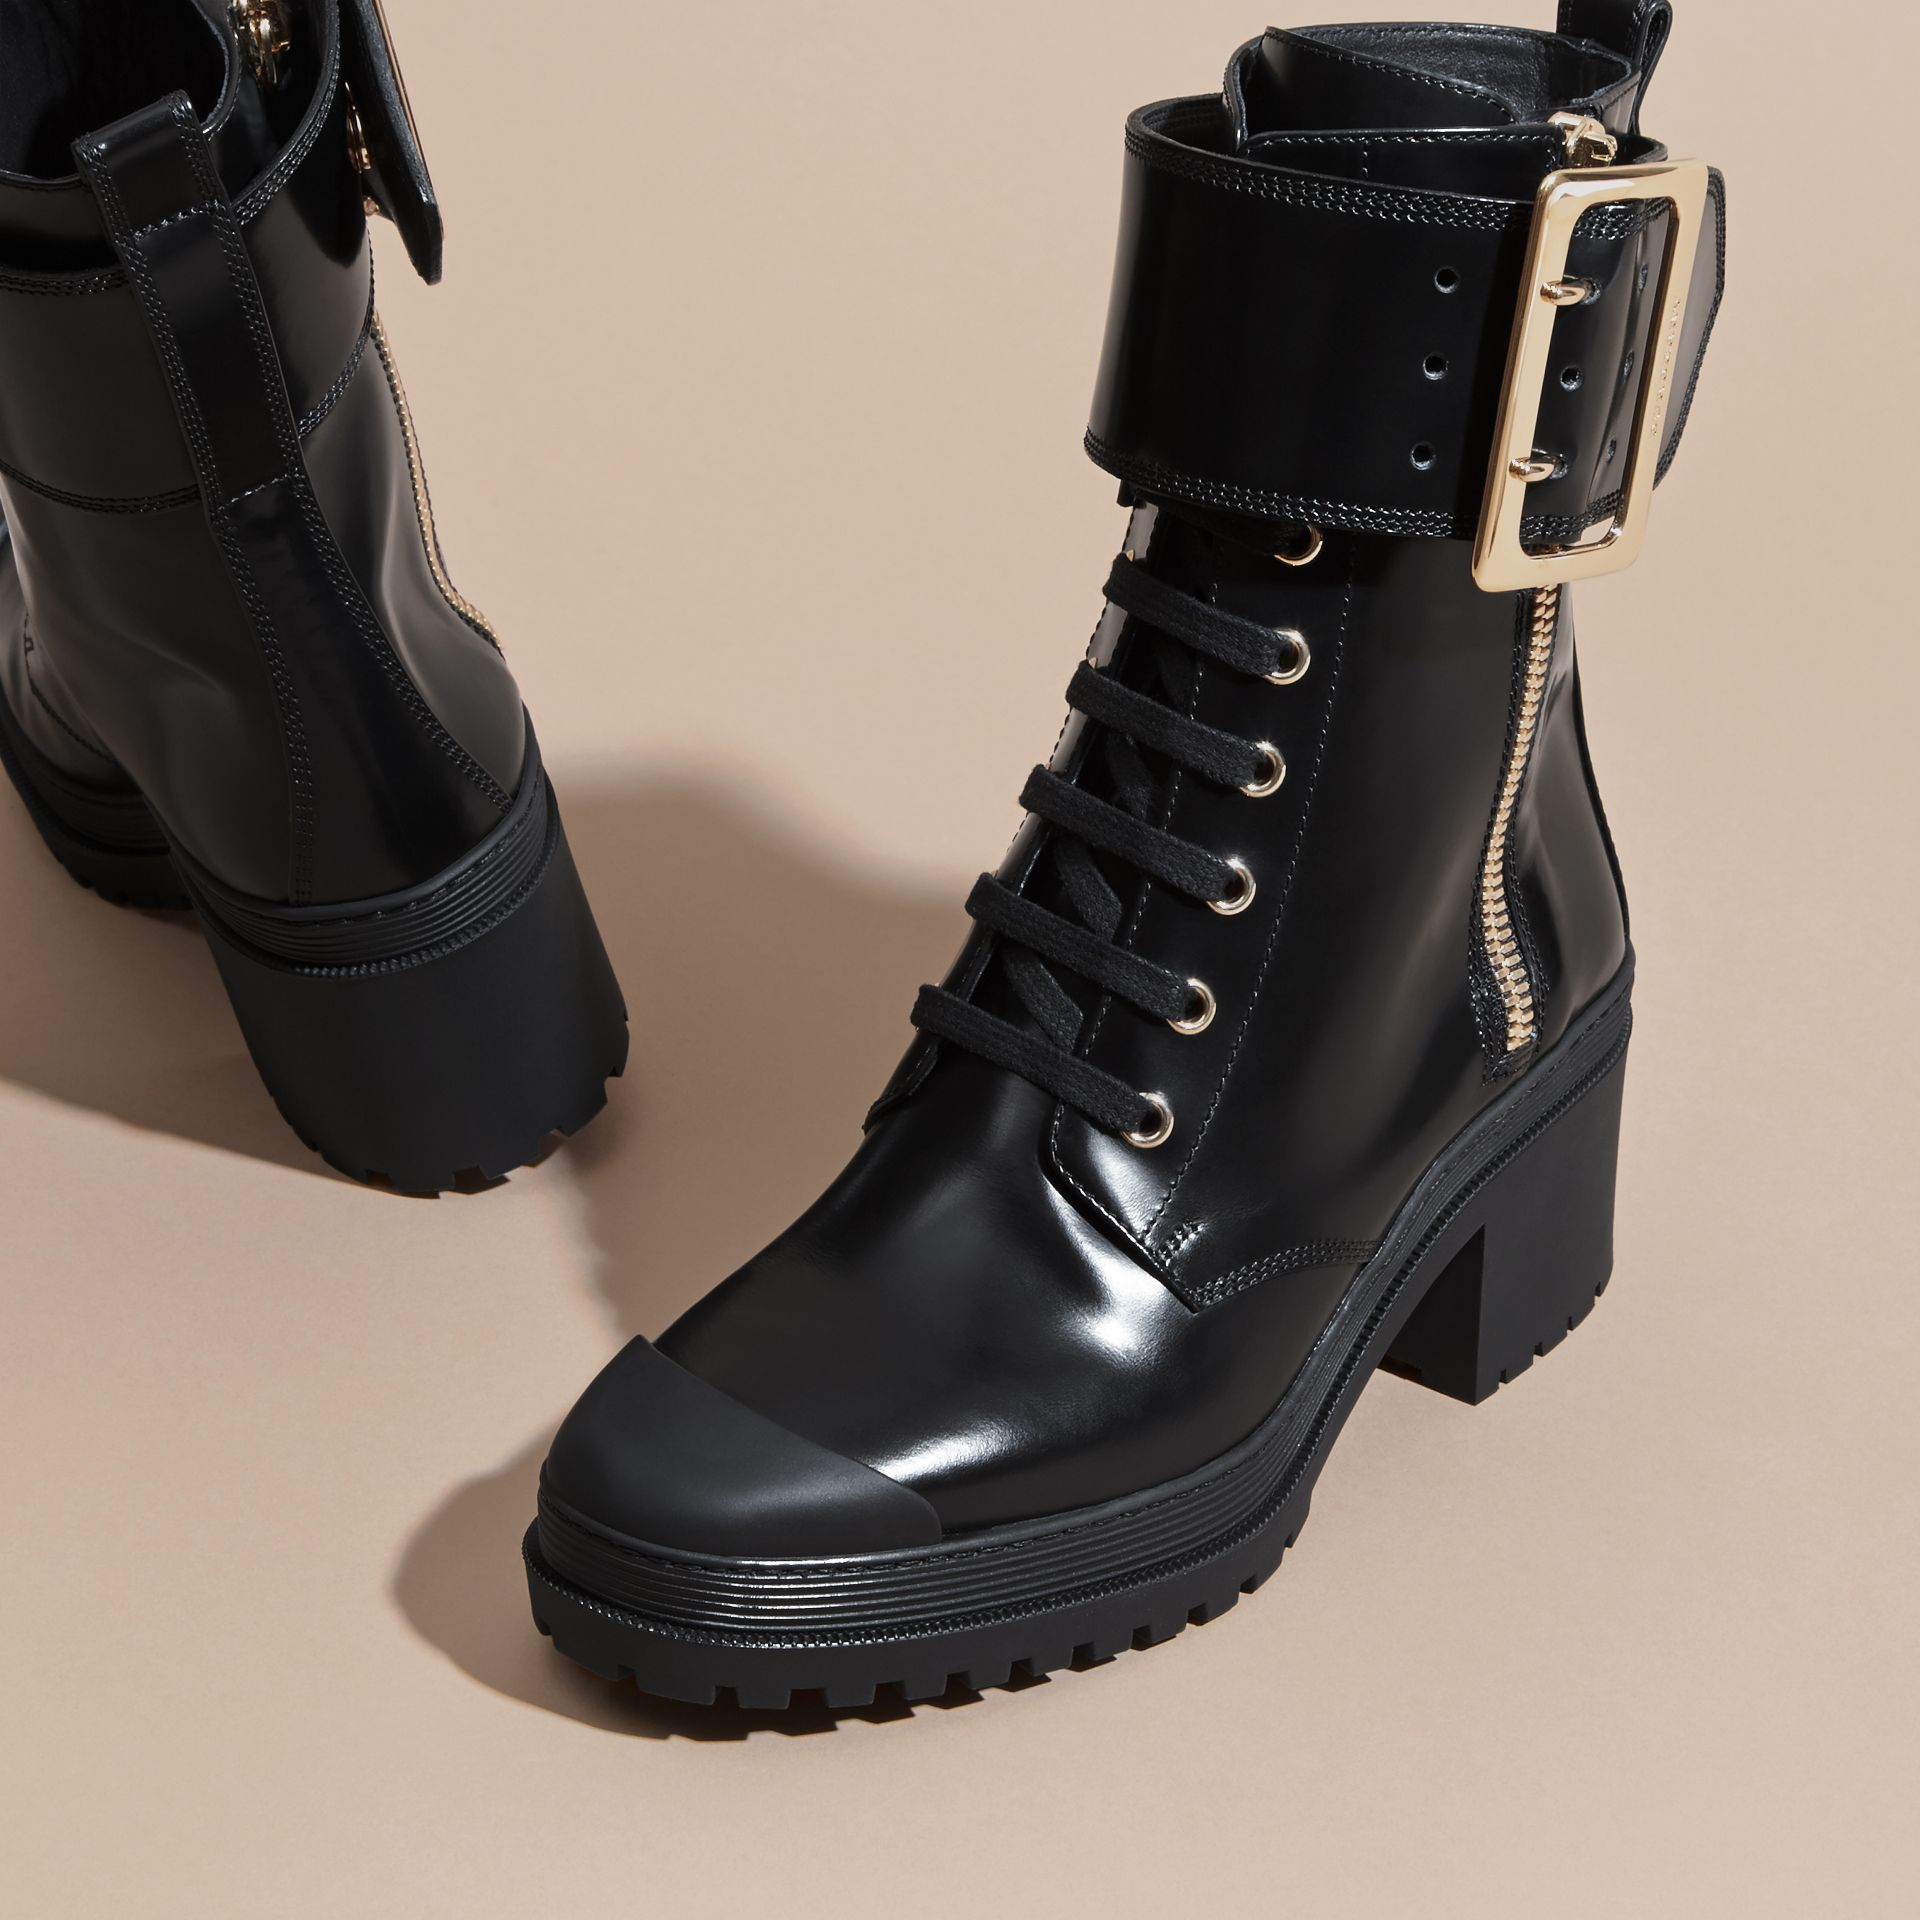 Black Leather Buckle Detail Boots Black - gallery image 3